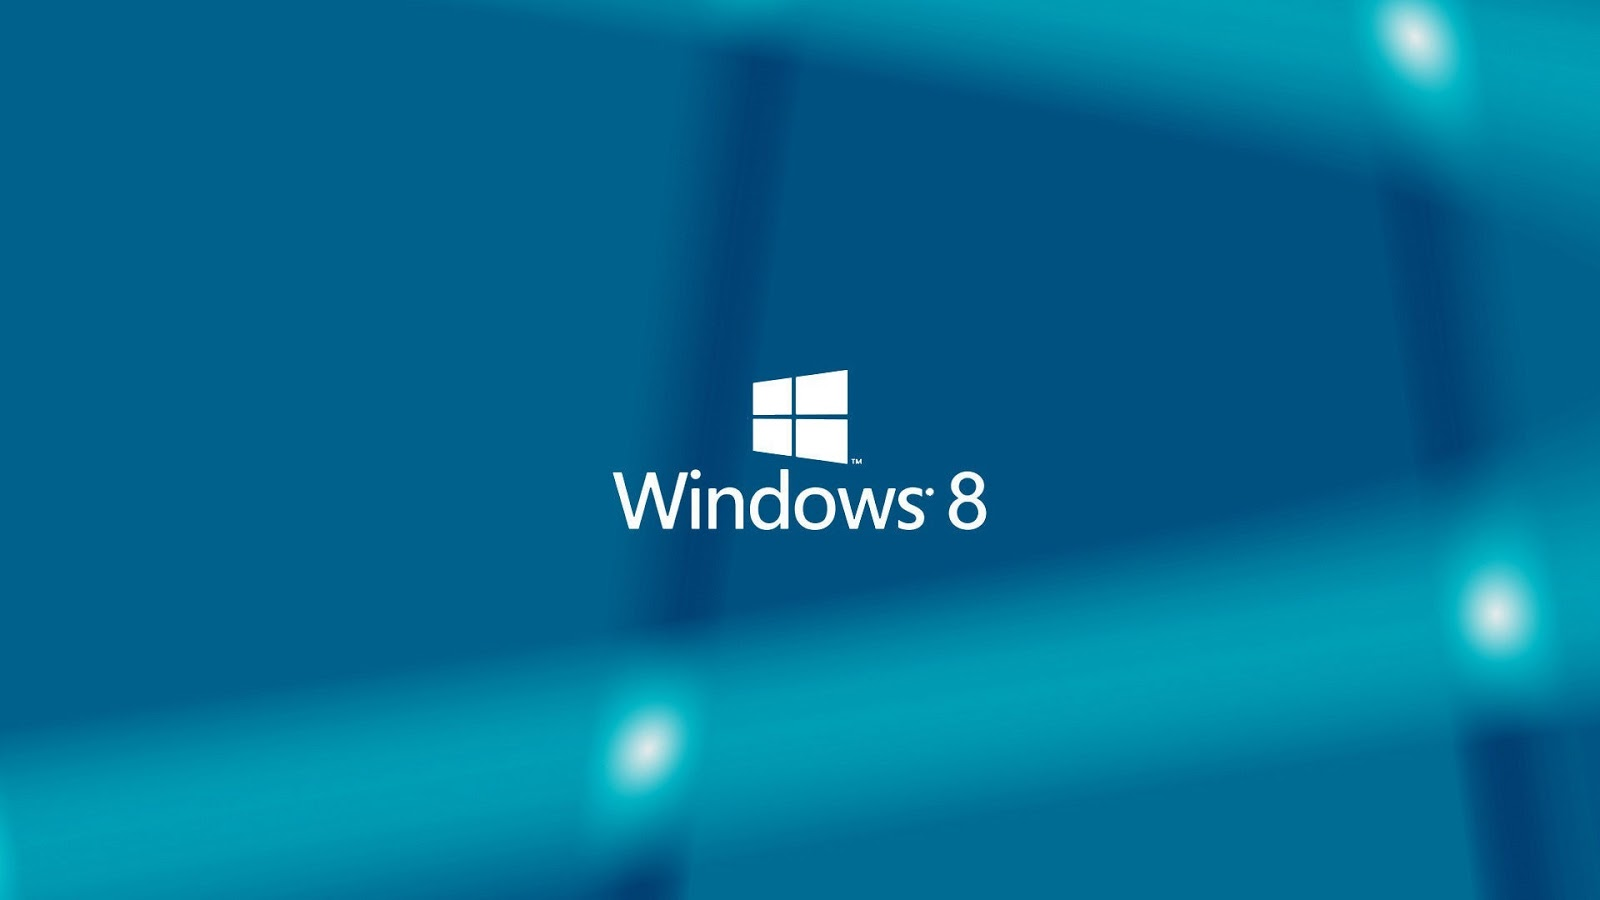 Install new windows full version 64 bit - Microsoft Community